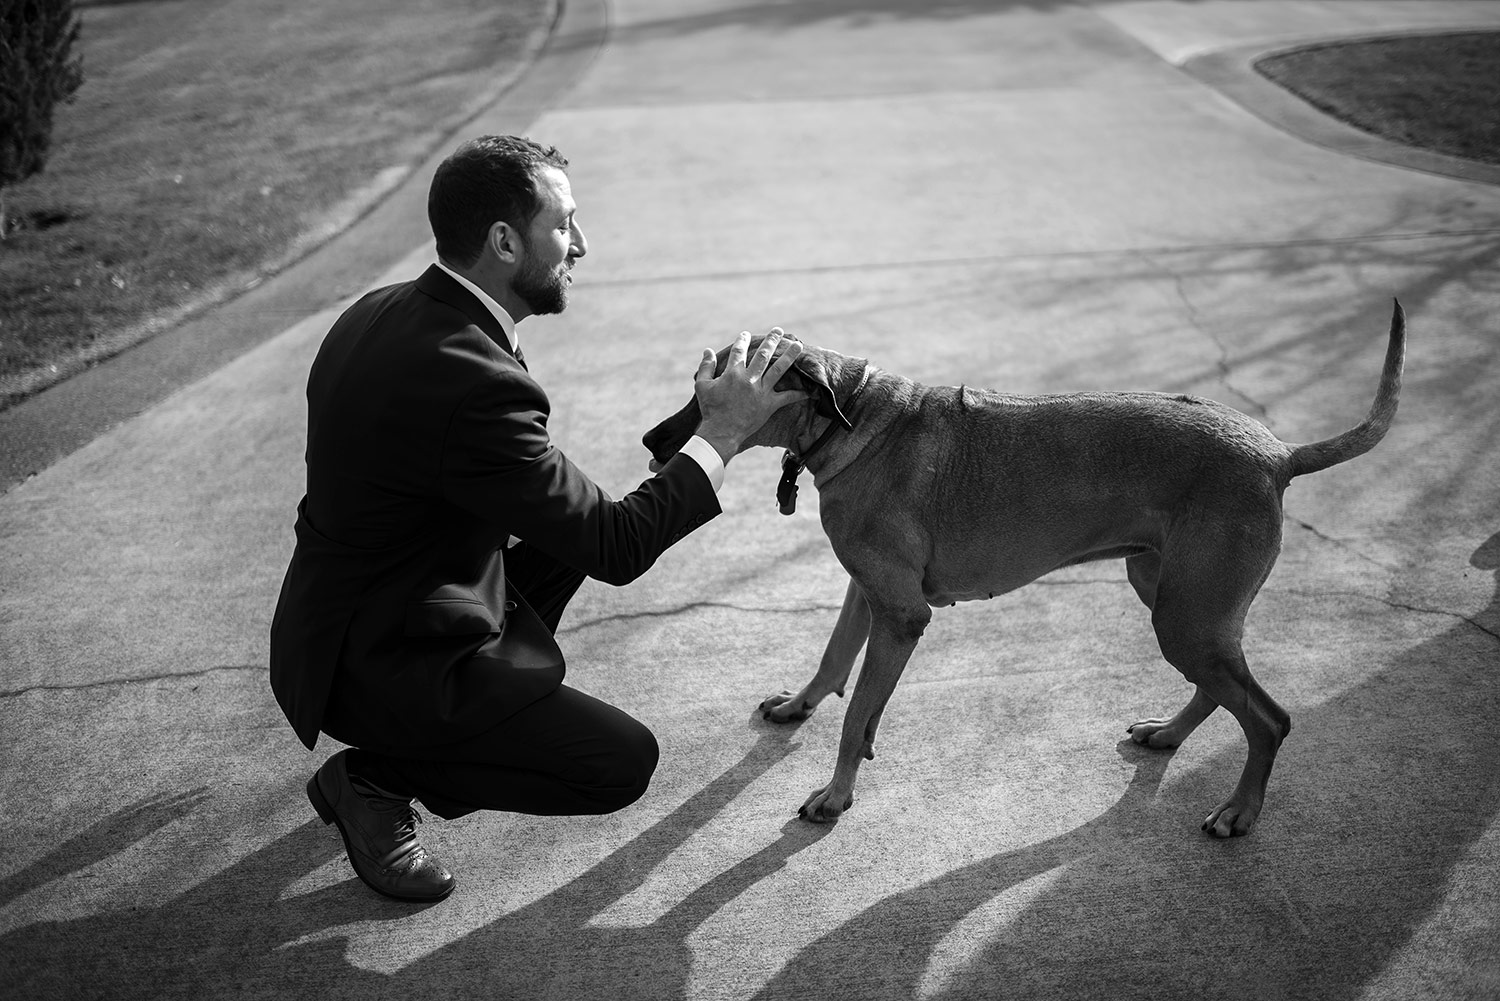 Groom and Dog in black and white during a Whidbey Island wedding at Comforts Winery